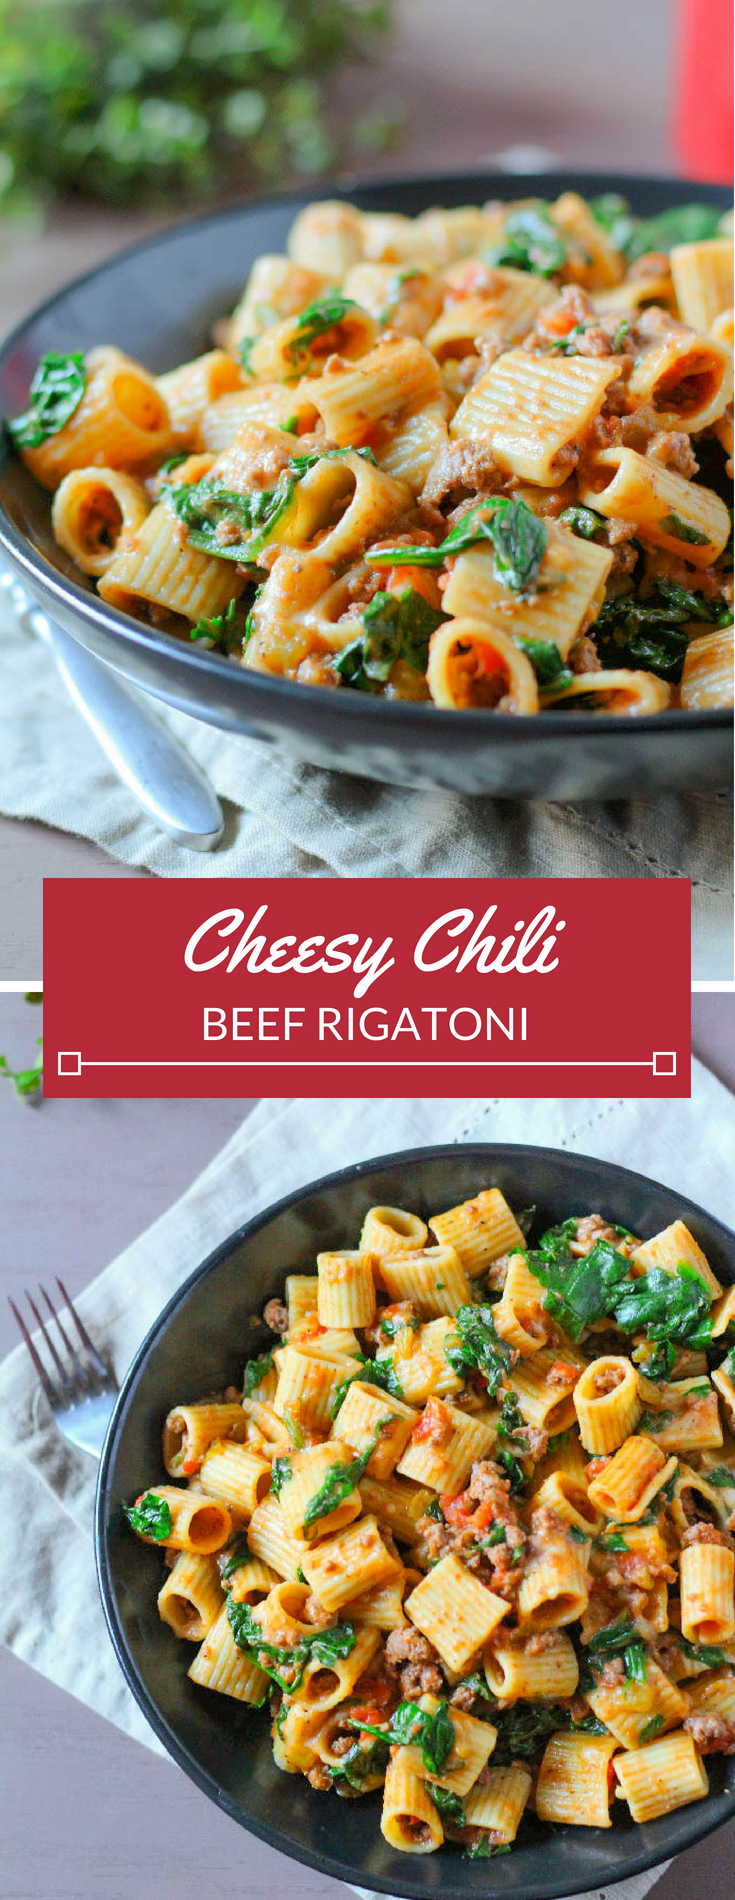 Cheesy Chili Beef Rigatoni is the perfect weeknight meal: warm pasta combined with beef, tomatoes, chilies, and fresh spinach, topped with Monterrey cheese. You just need two pots for this meal-- one to cook the pasta in and one to make everything else. Easy clean up!